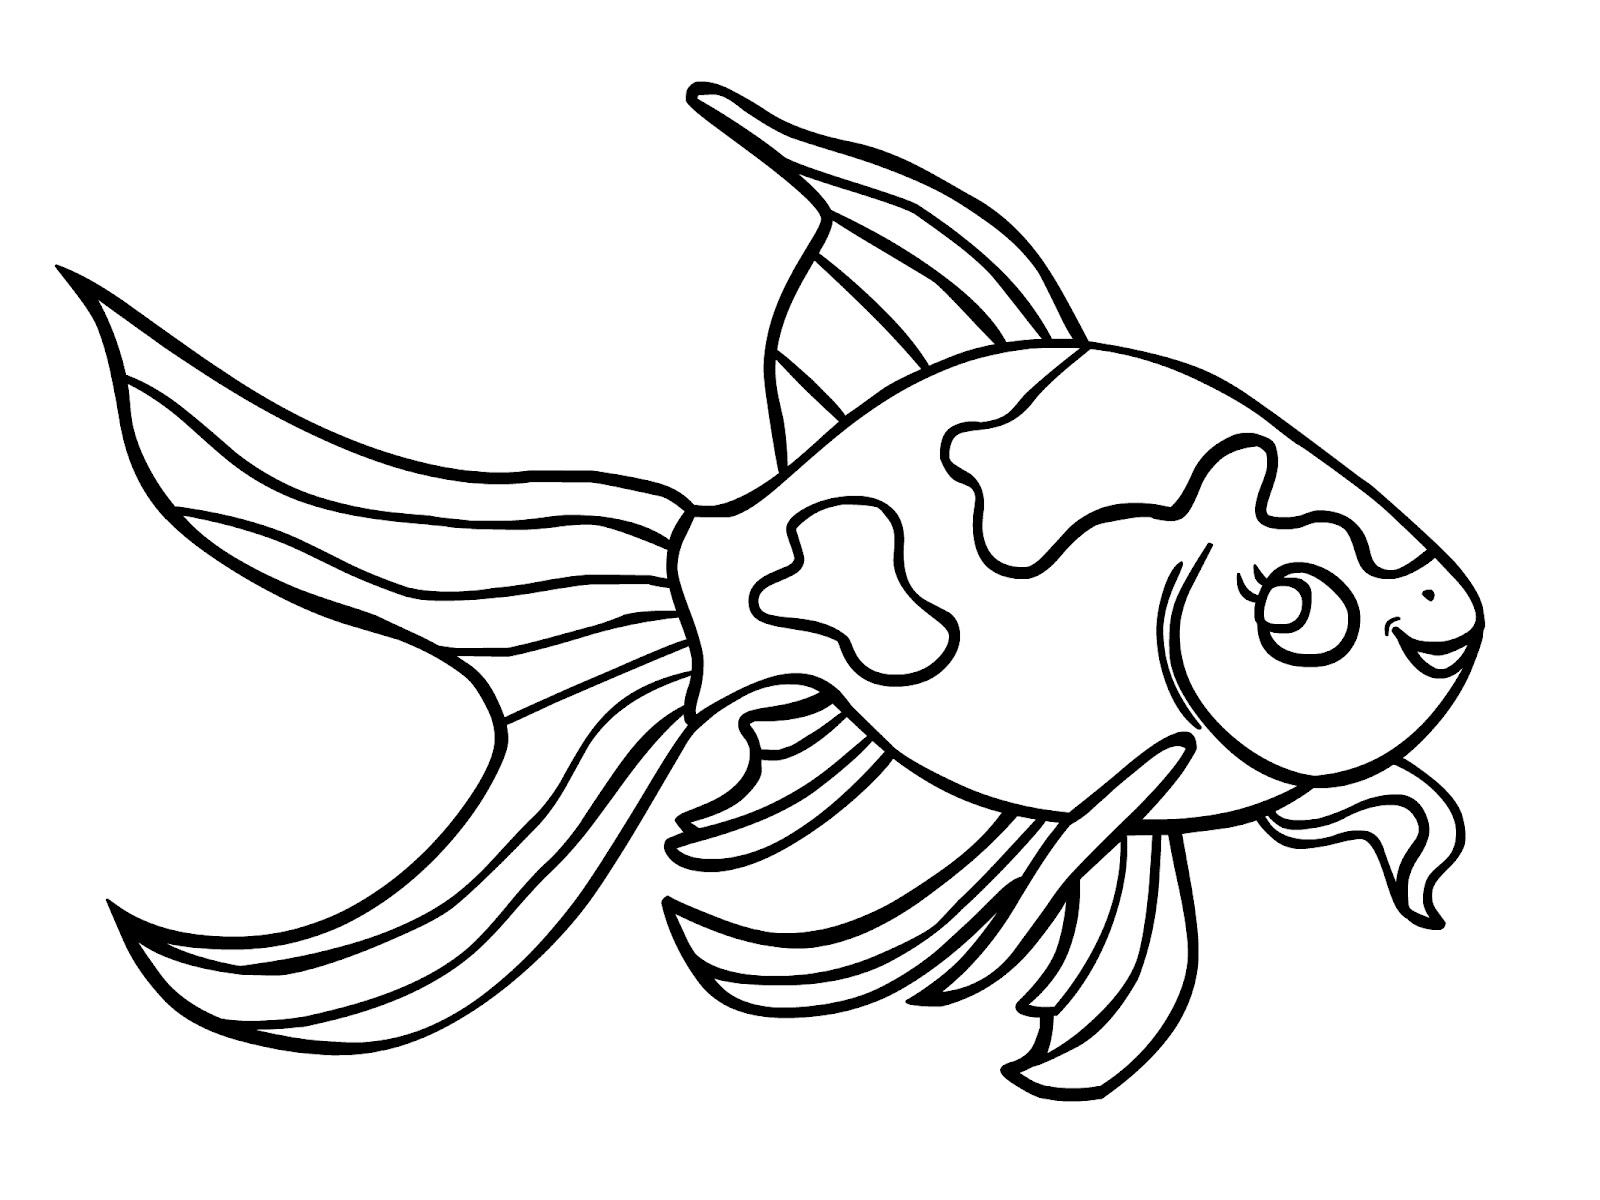 pictures of fish to color free printable goldfish coloring pages for kids fish pictures to color of